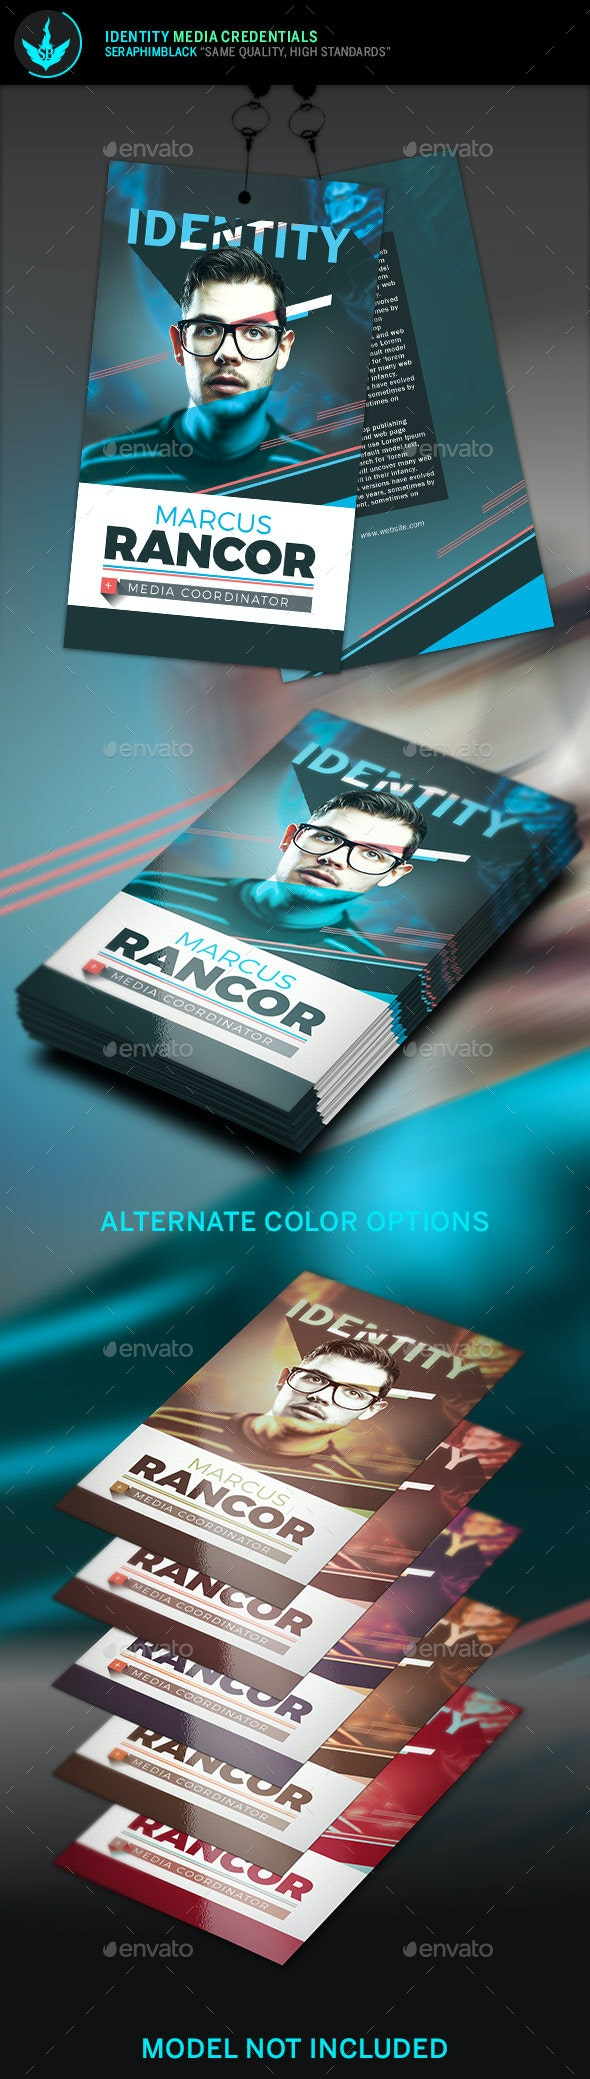 Identity Media Credentials Template - Miscellaneous Print Templates